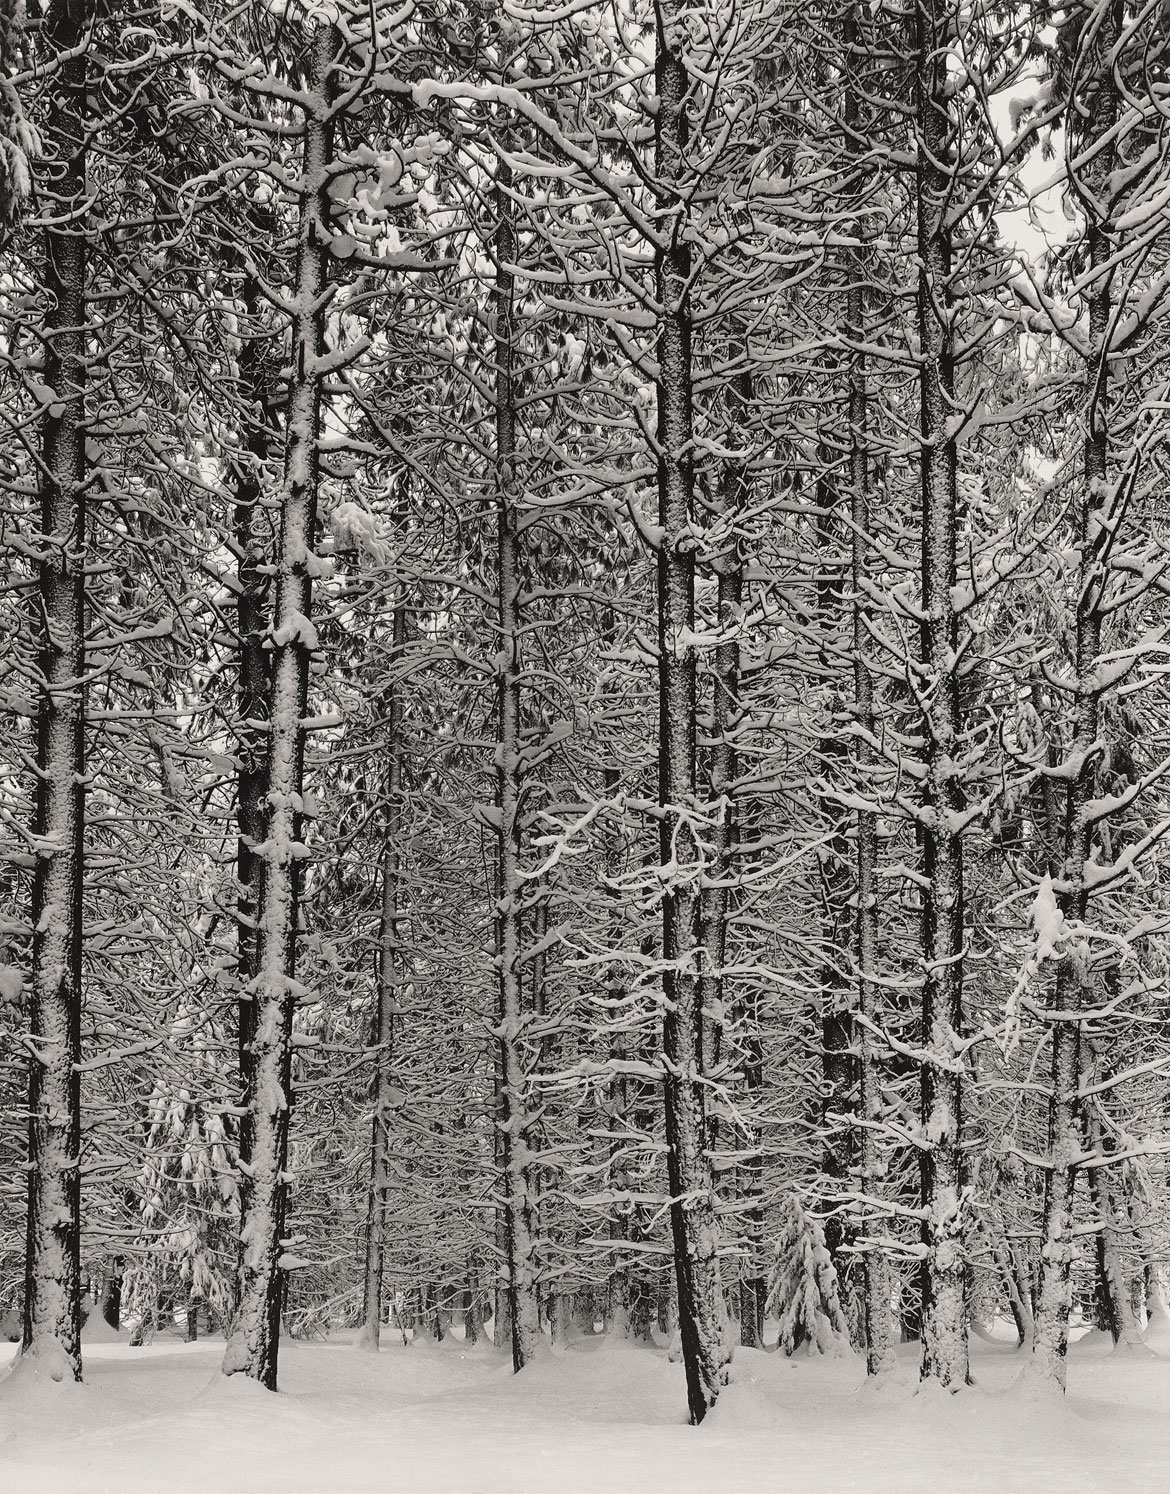 Reckoning With Ansel Adams's Photos Of A Mythic, Pristine American